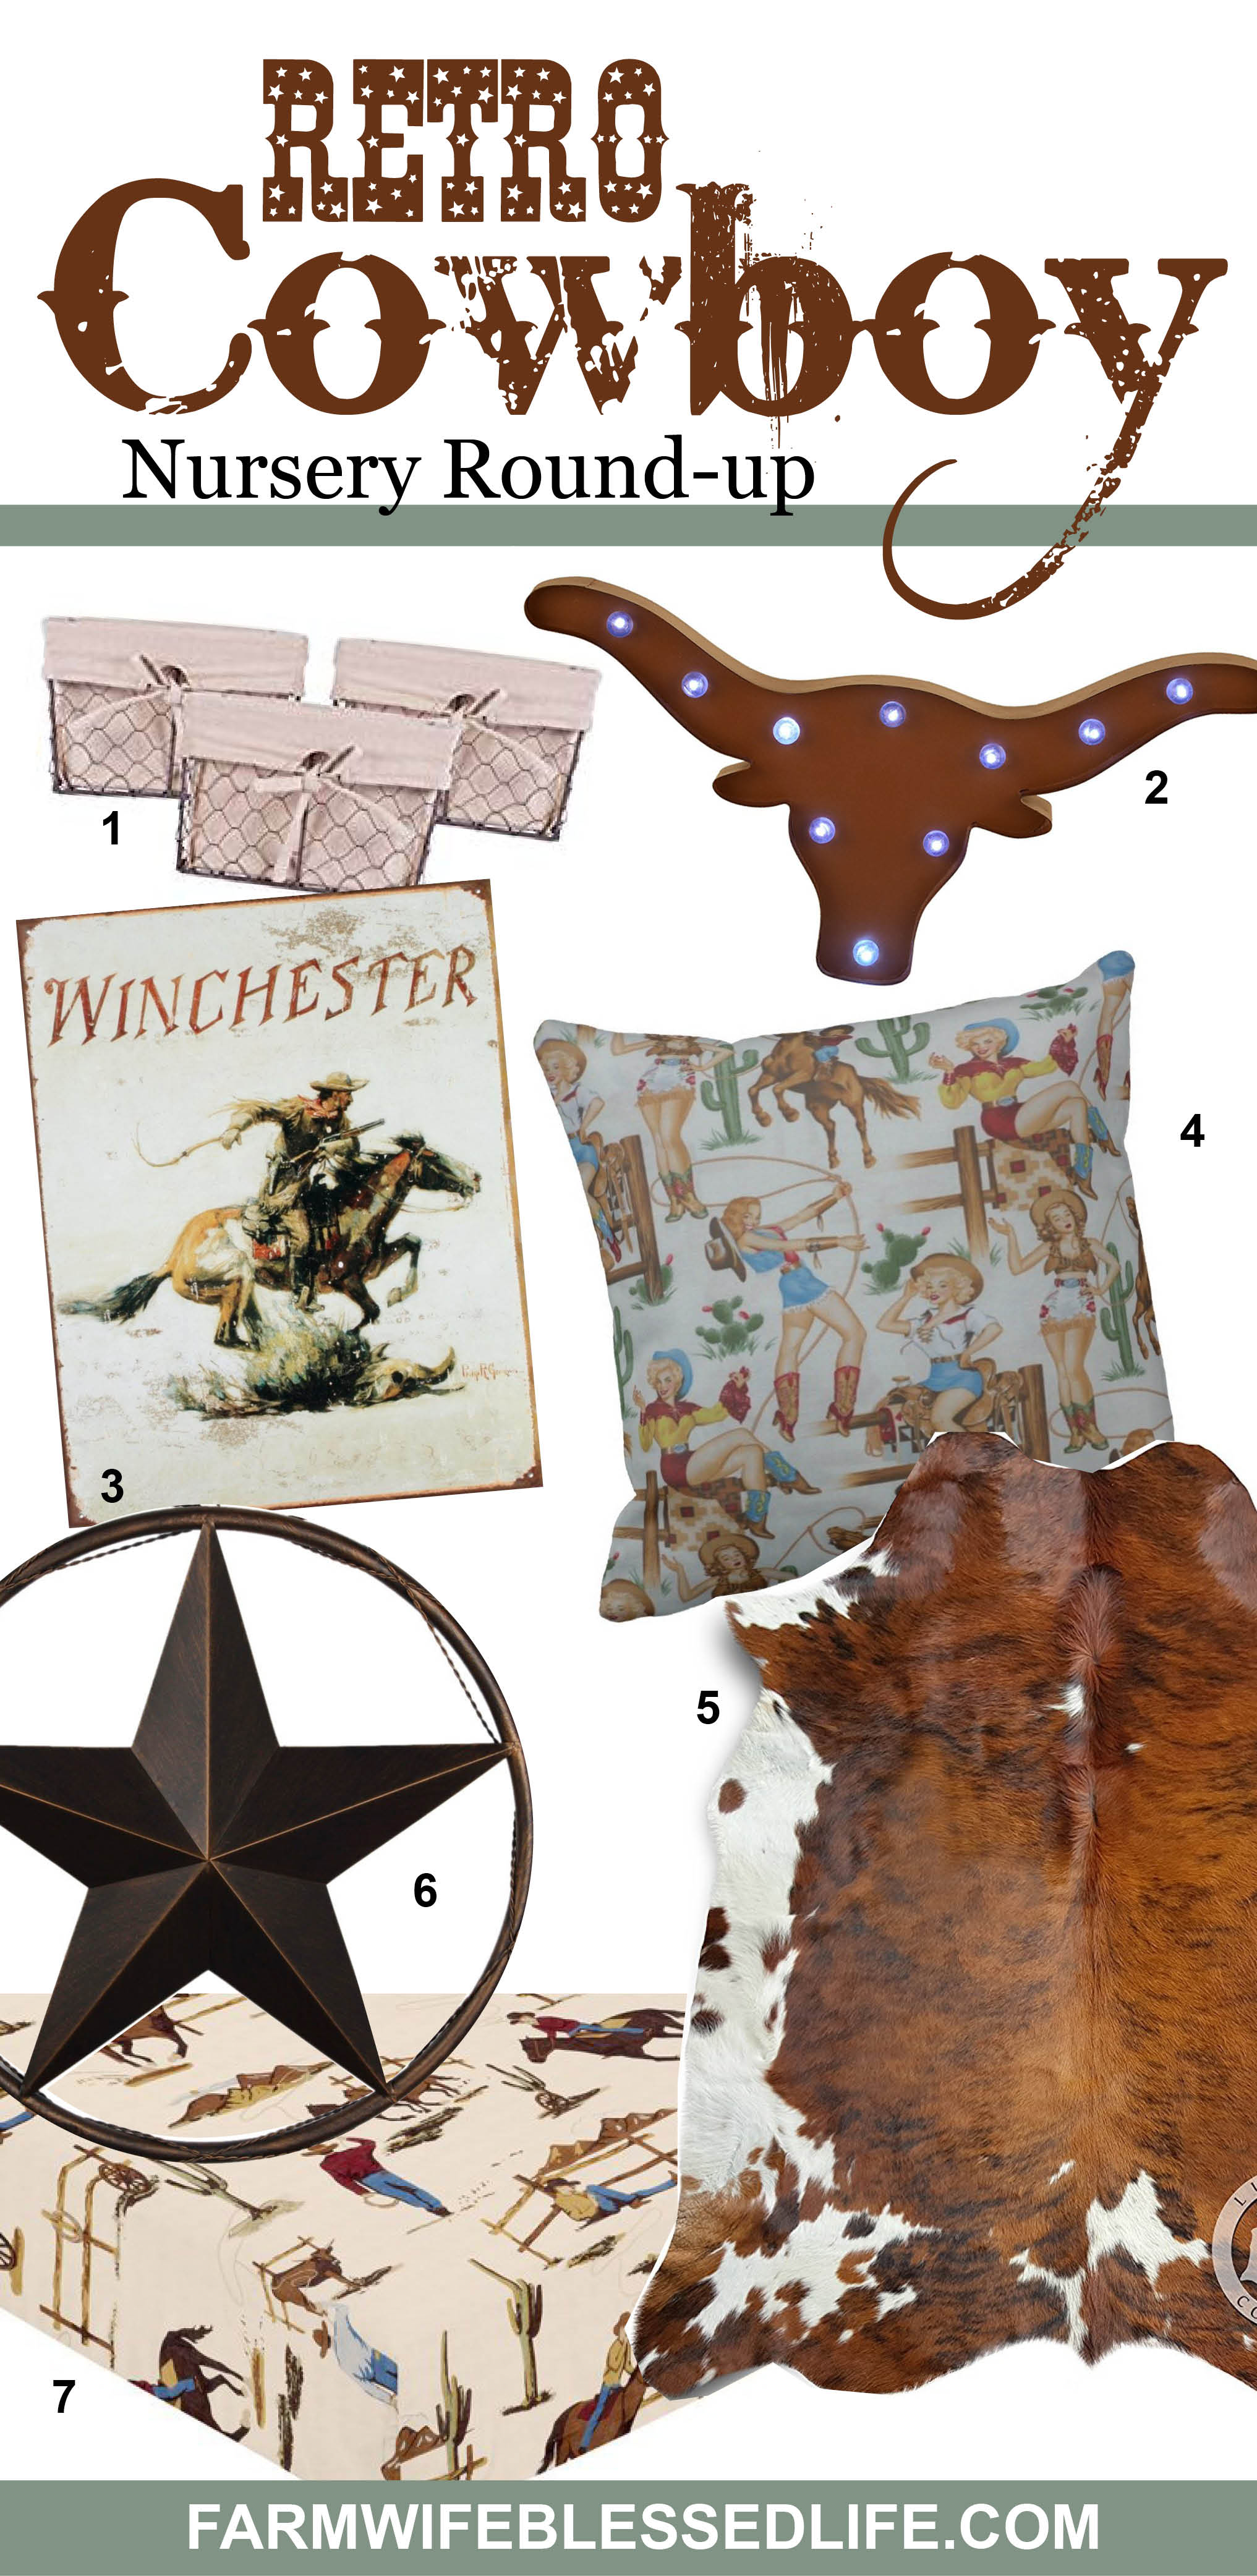 Retro Cowboy Nursery Round Up | Adorable retro cowboy nursery ideas for your buckaroo!